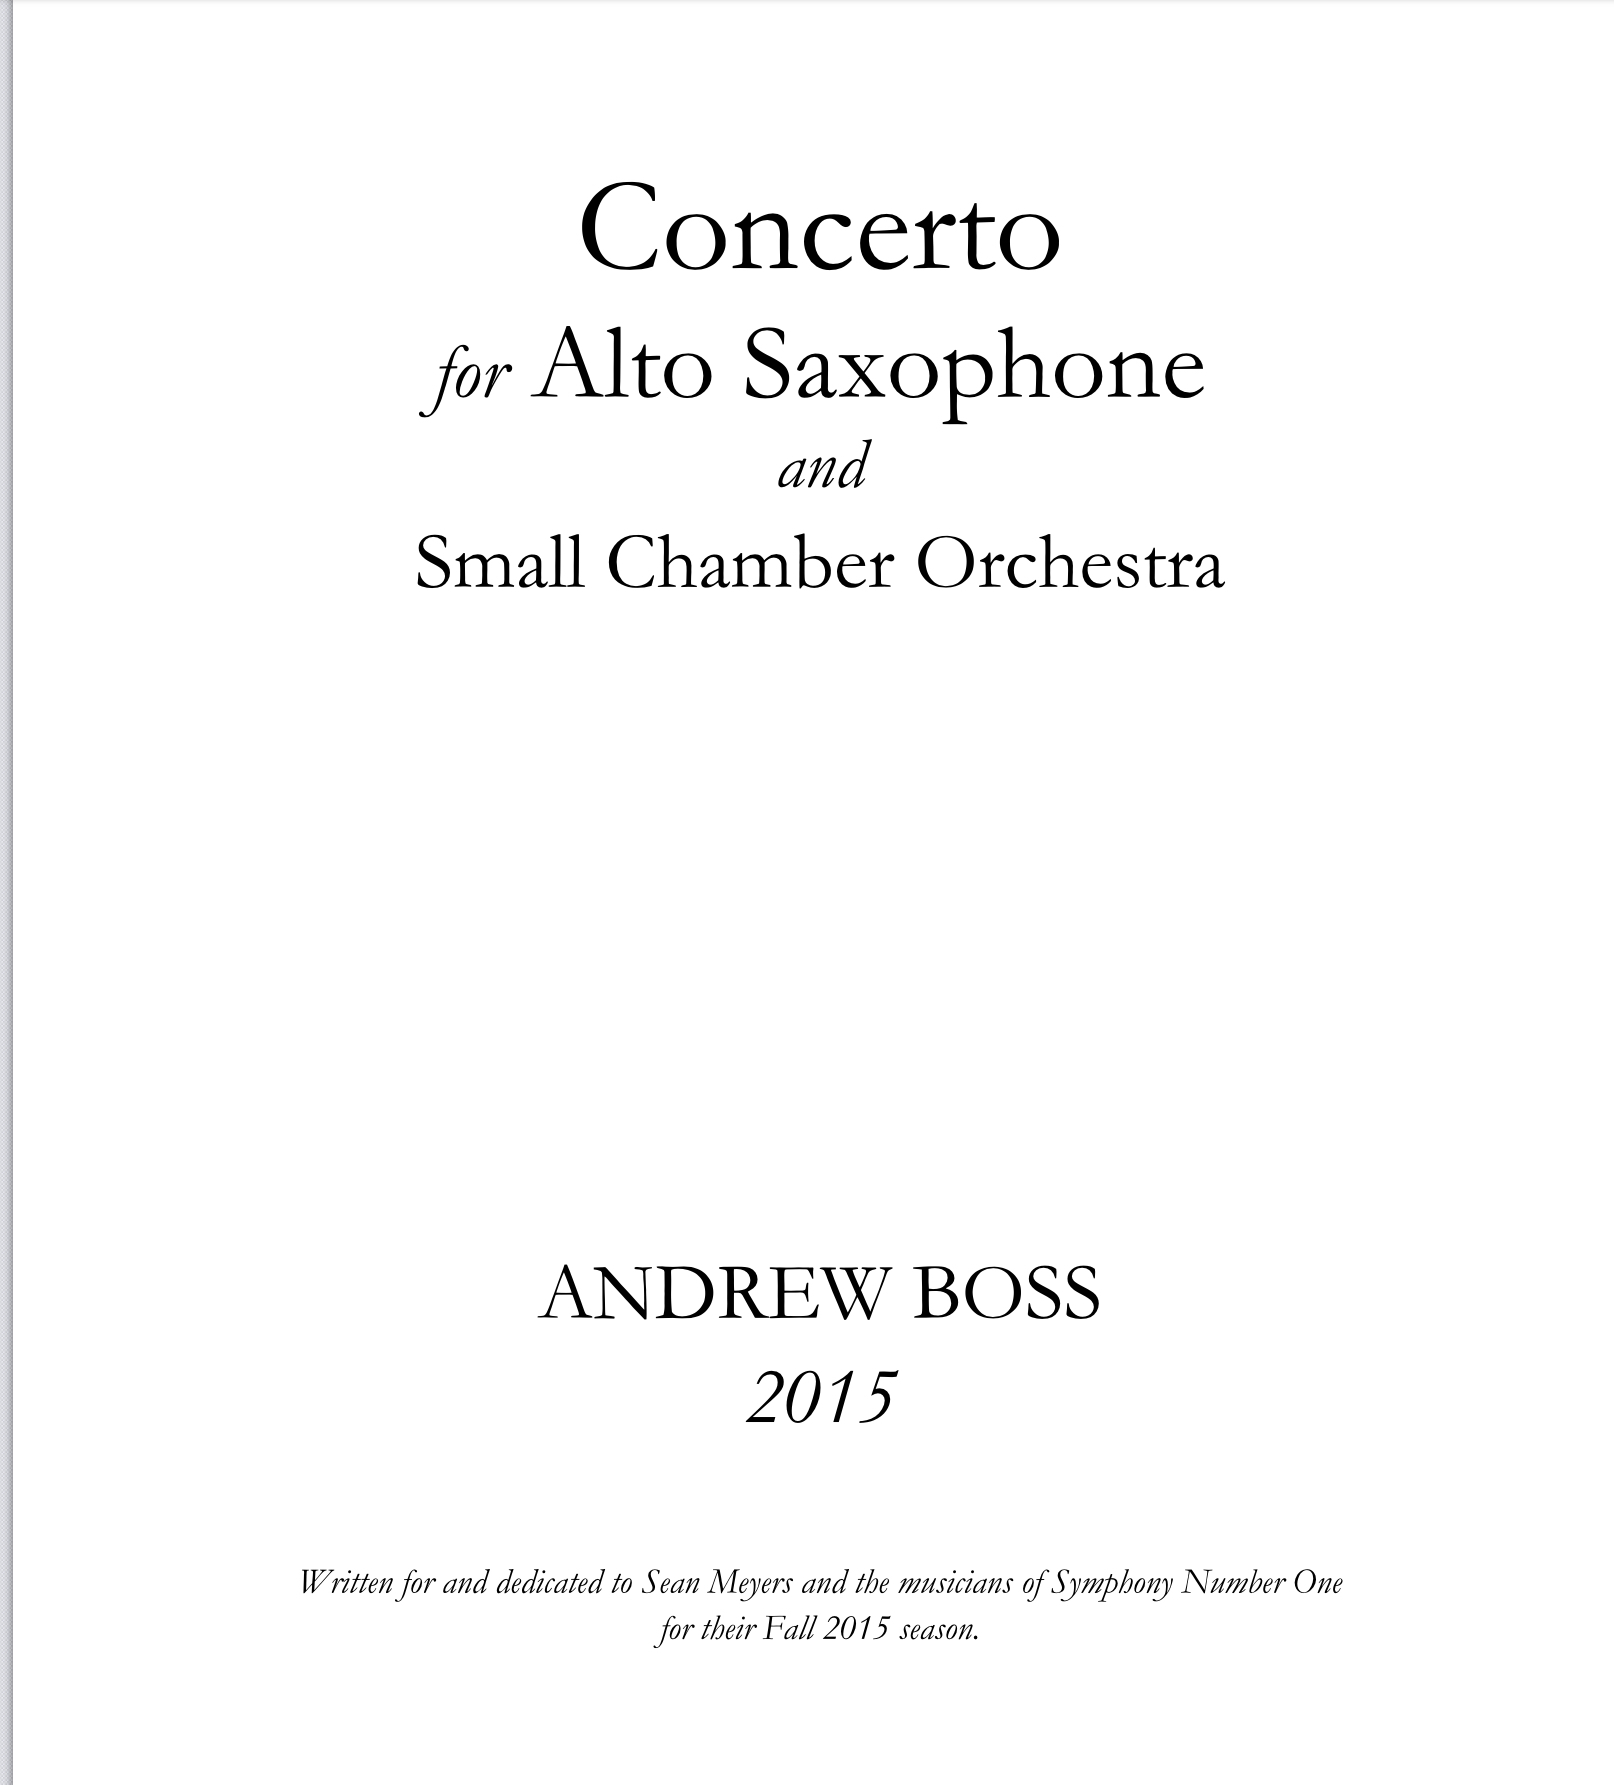 Concerto For Alto Saxophone-Piano Reduction  by Andrew Boss